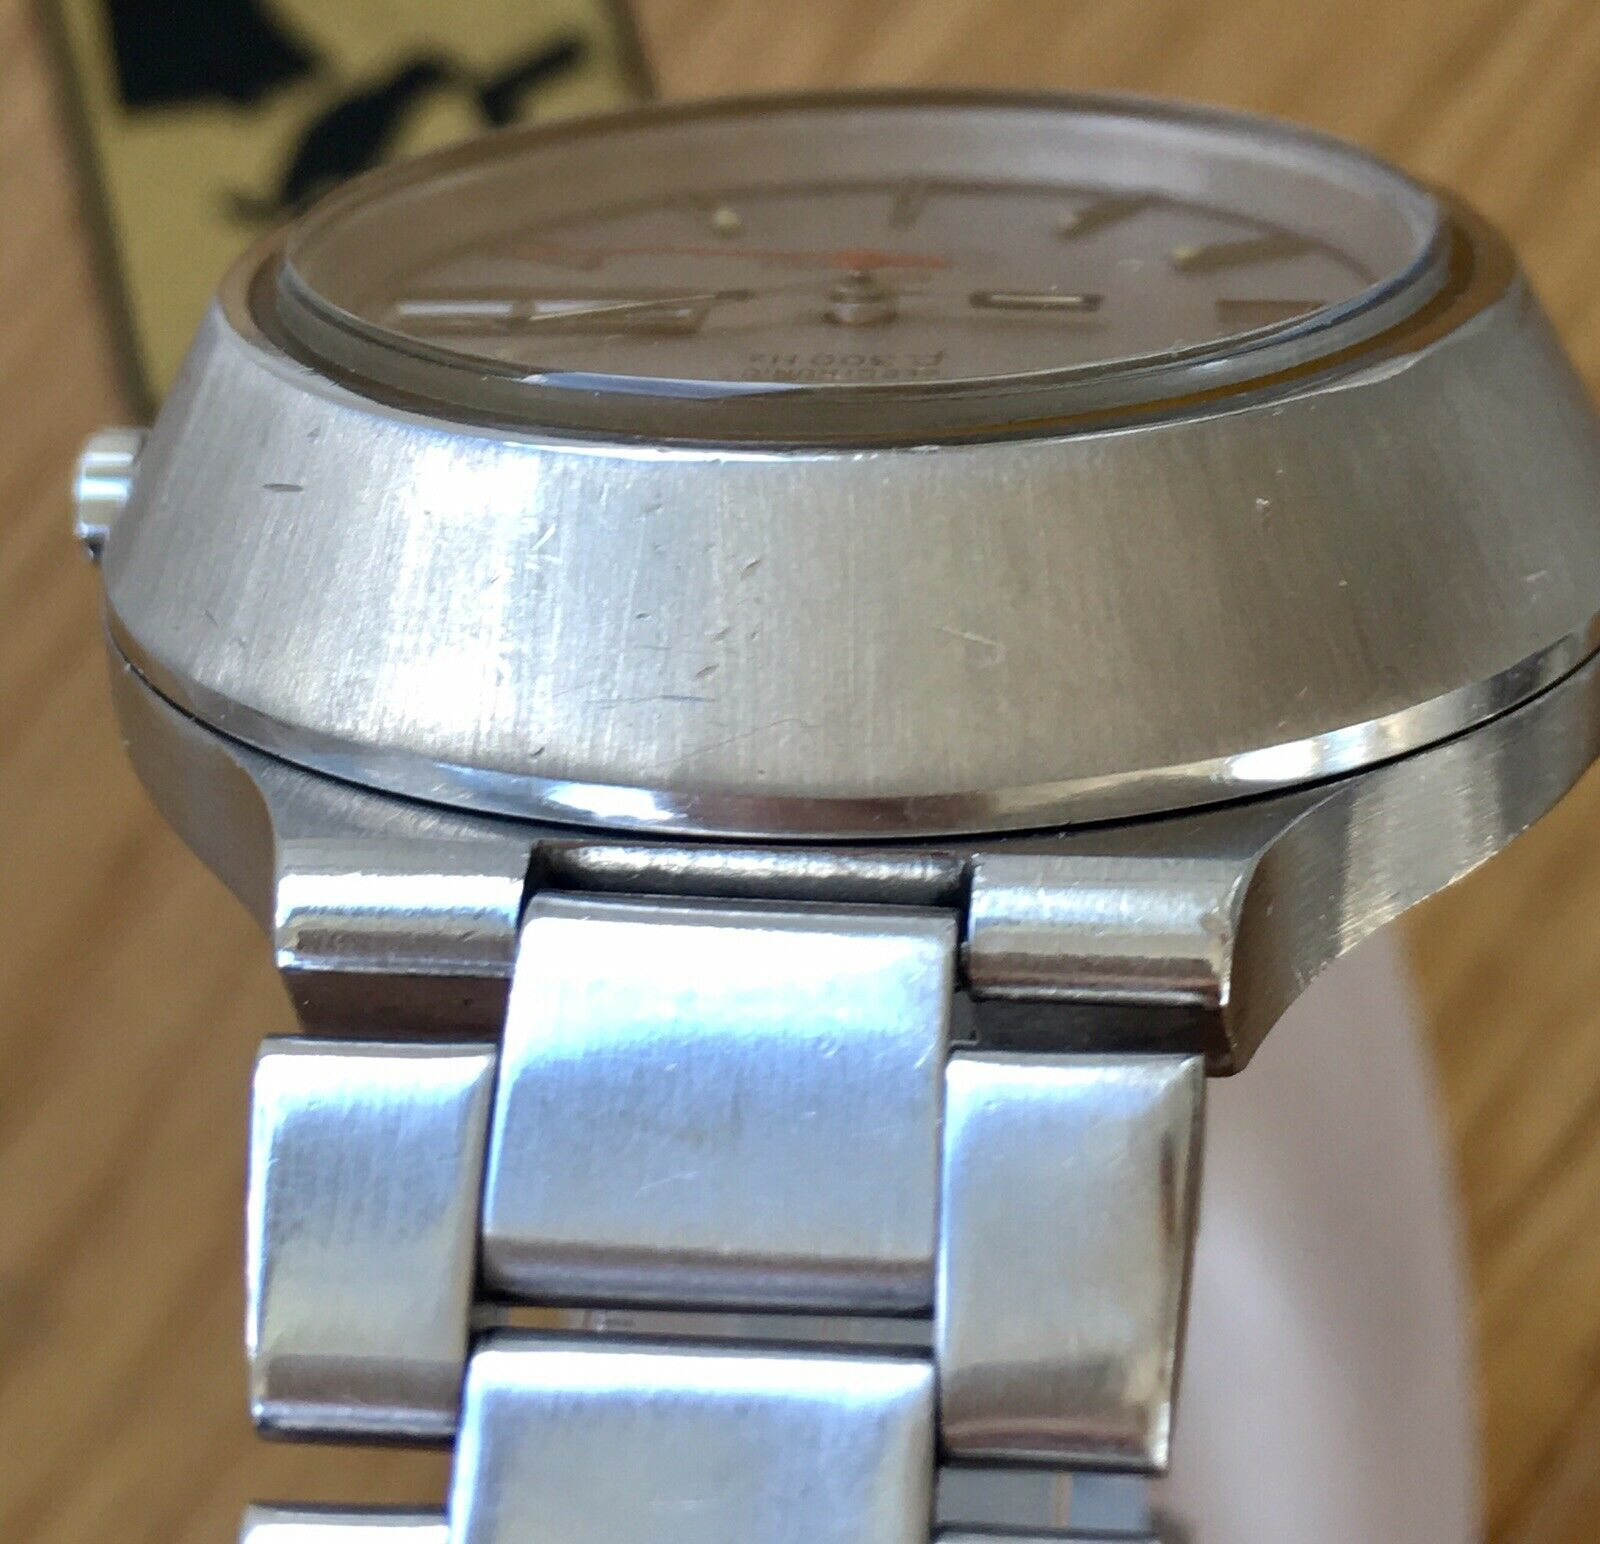 Name:  Omega f300 Cone DAY DATE - Ebay Germany - limette266 - Case 12 oclock Angle  20190510.JPG Views: 33 Size:  237.2 KB